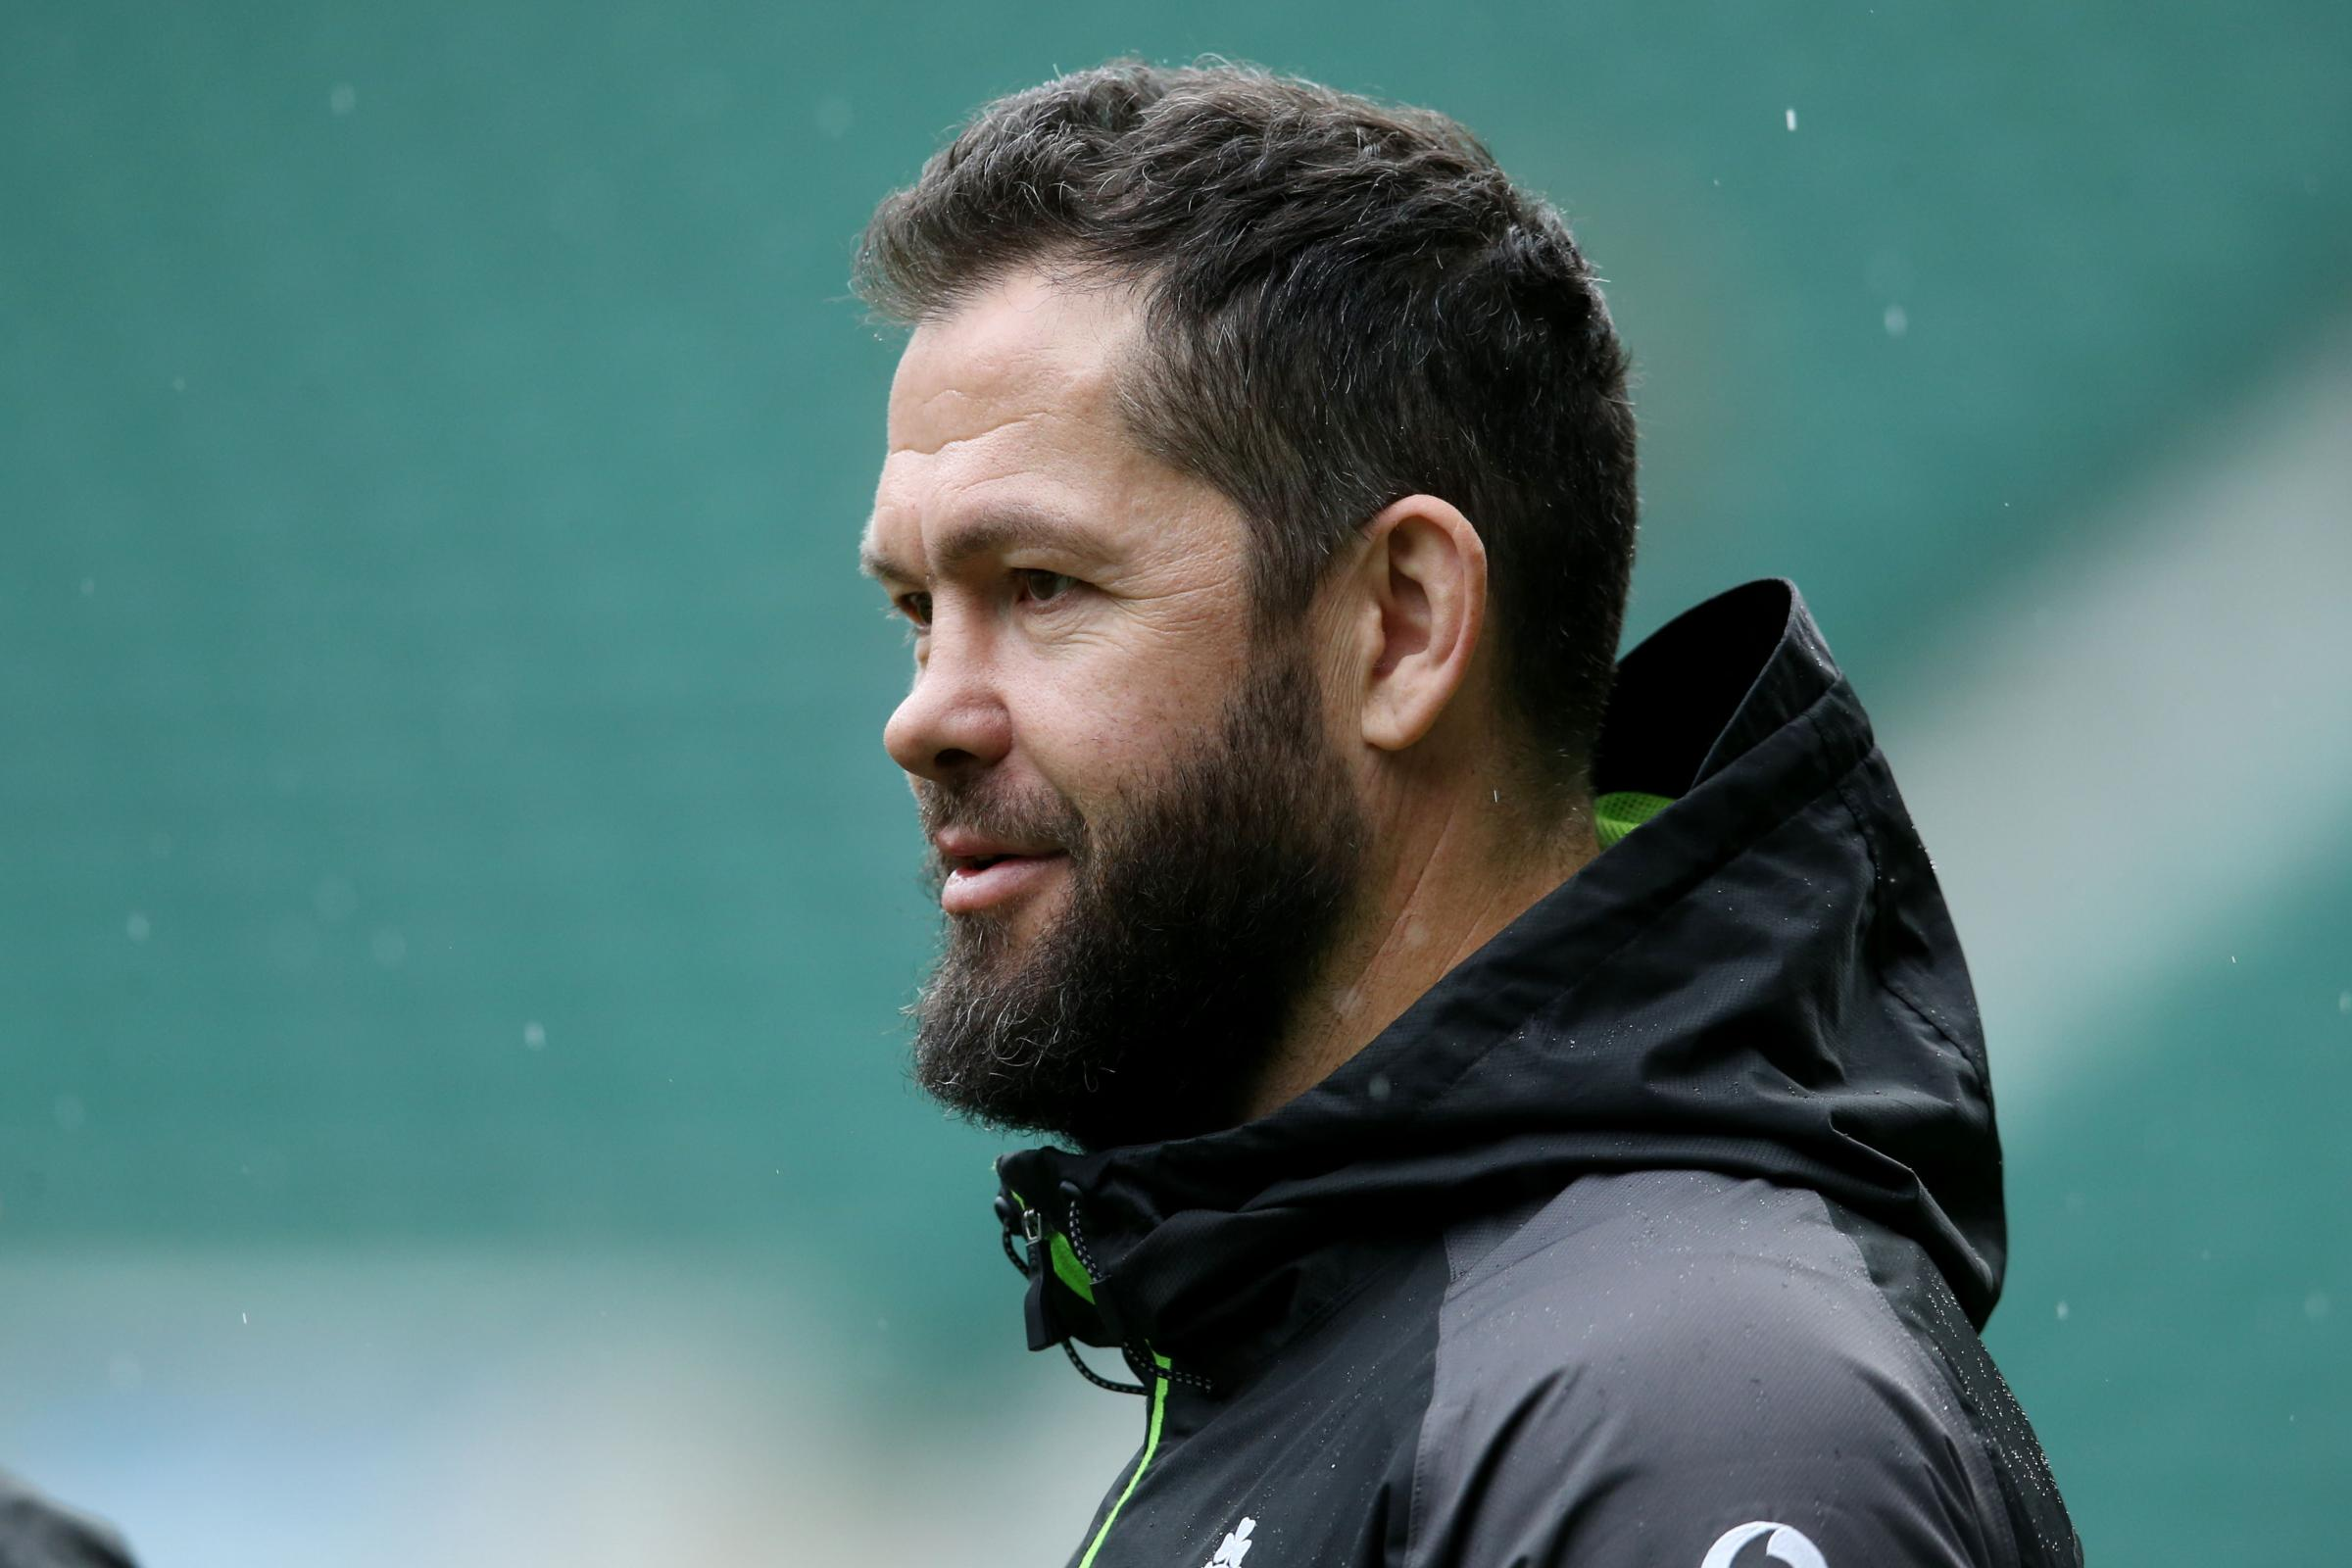 Andy Farrell insists New Zealand still the world's best even if Ireland win